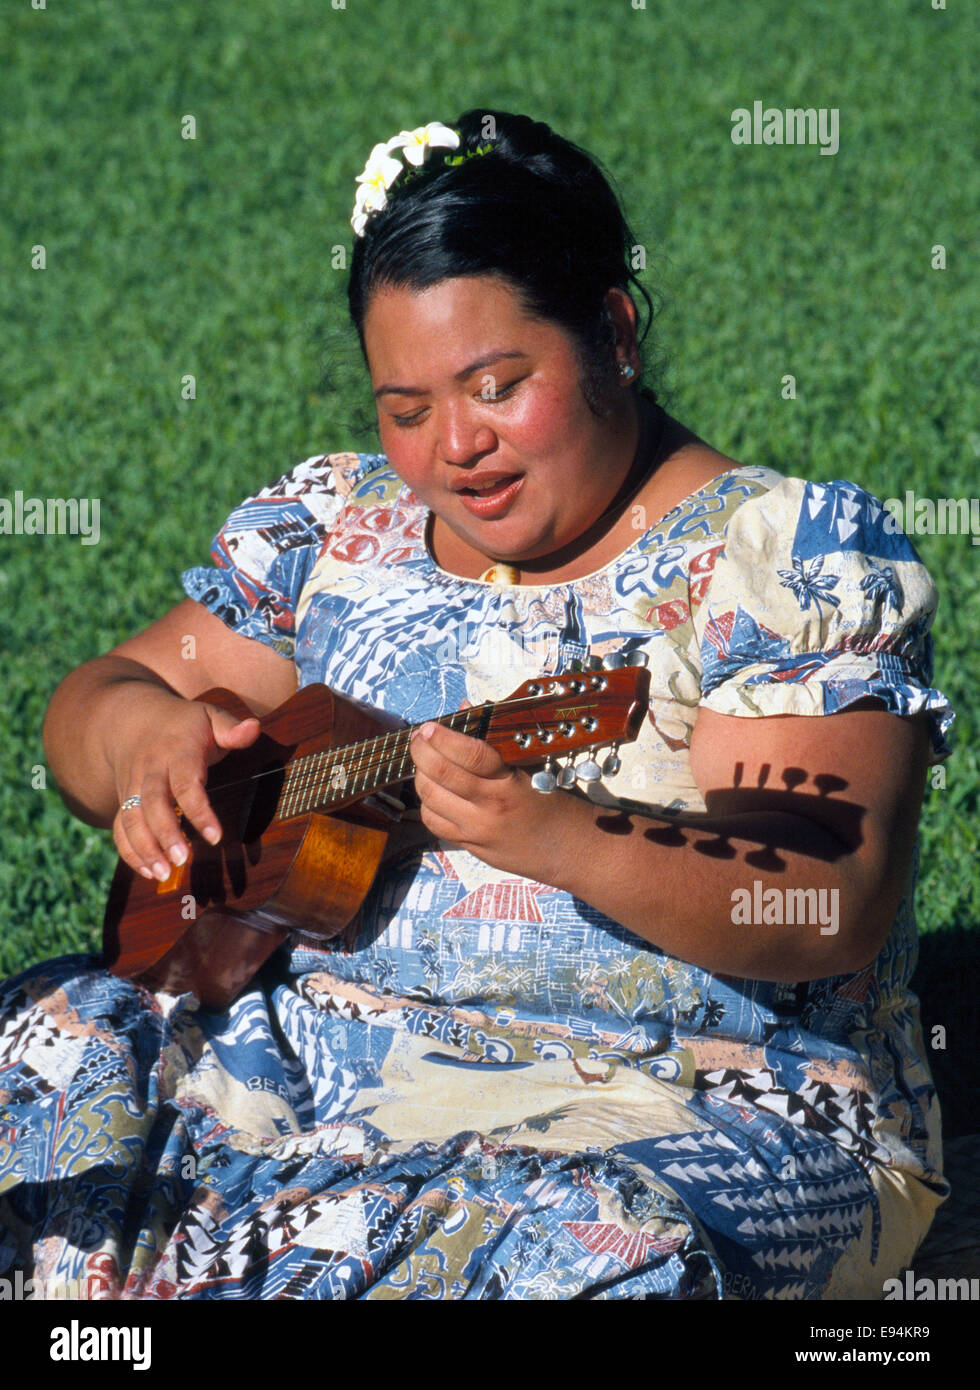 A young Hawaiian woman in Honolulu, Hawaii, USA, sings and strums an eight-string ukelele outdoors in the bright - Stock Image